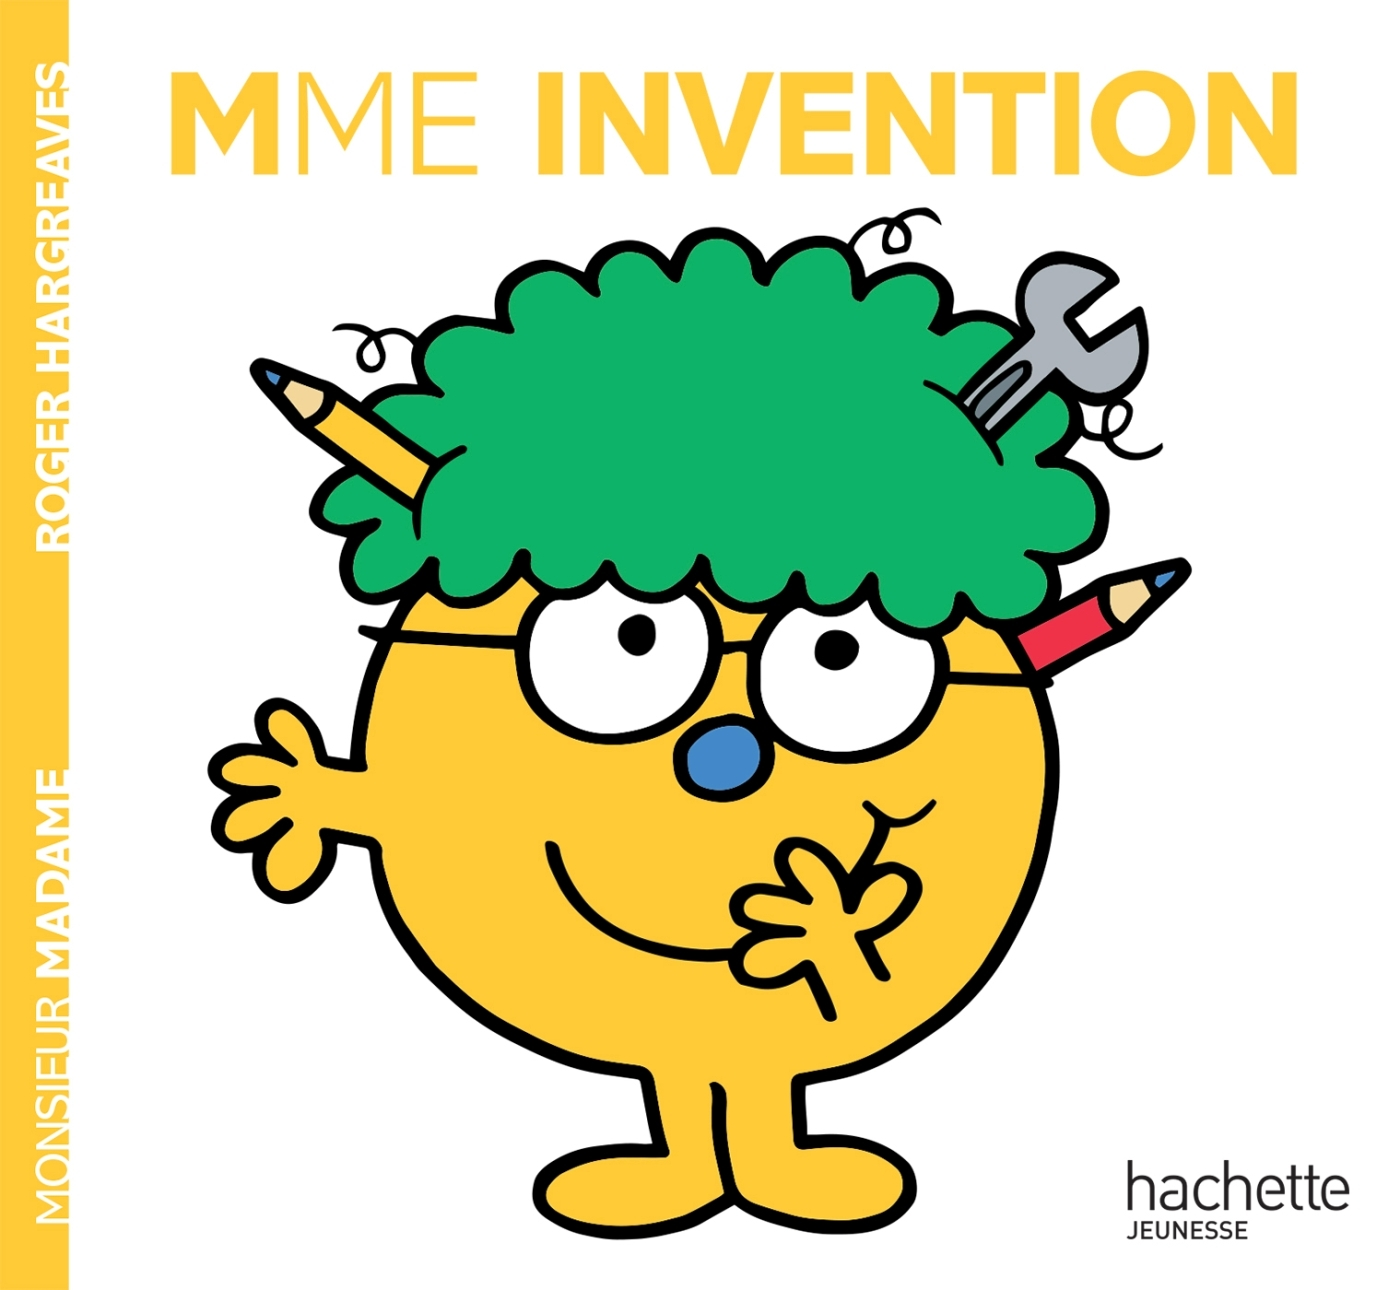 MADAME INVENTION